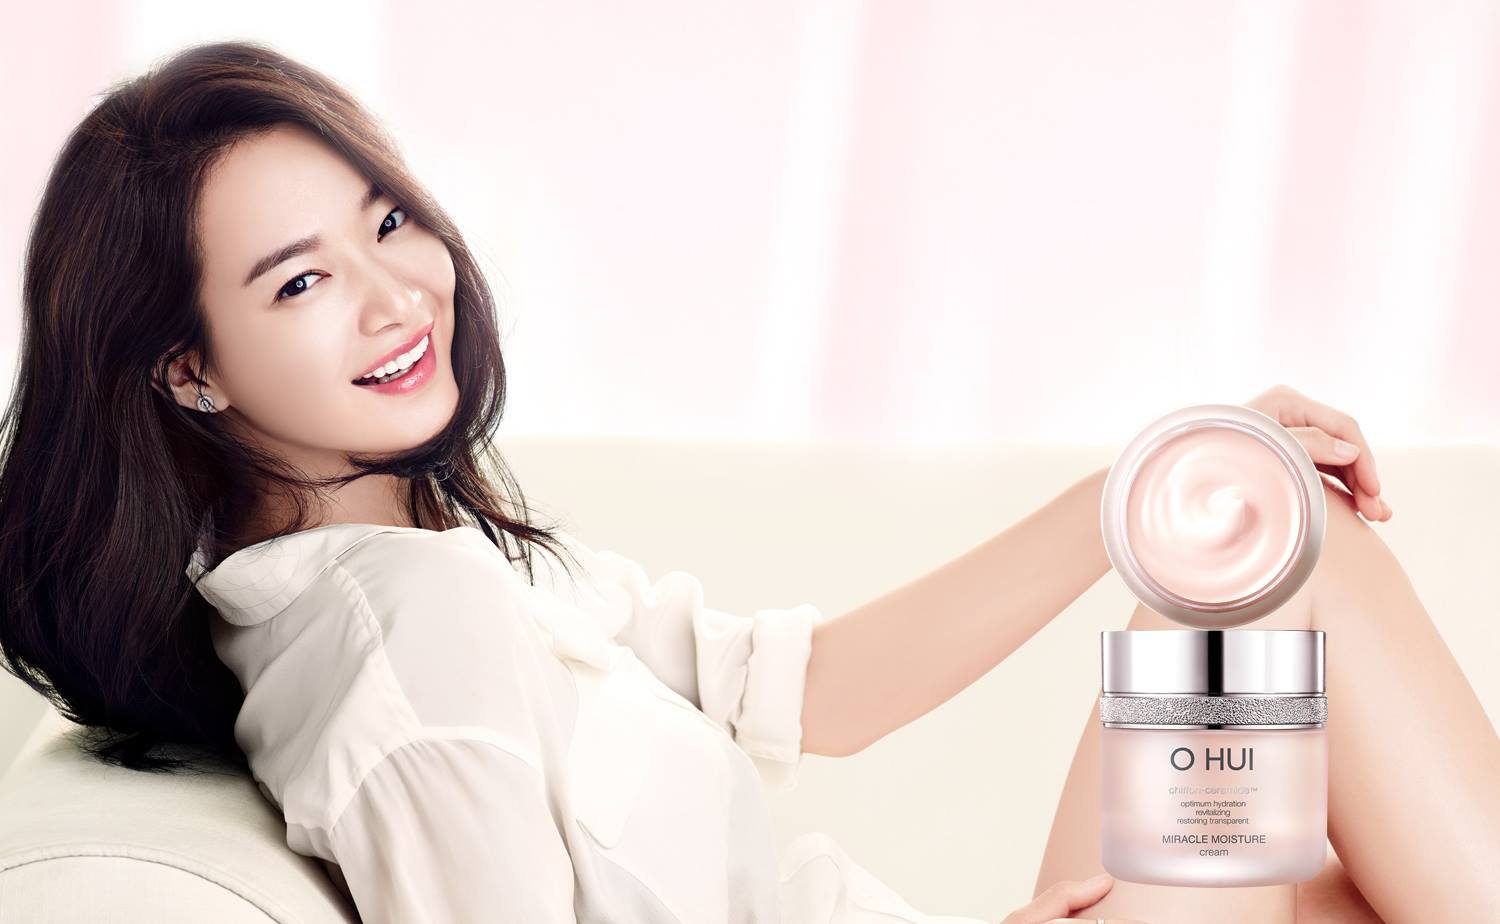 O HUI Ads | Shin Min Ah INTERNATIONAL FANS